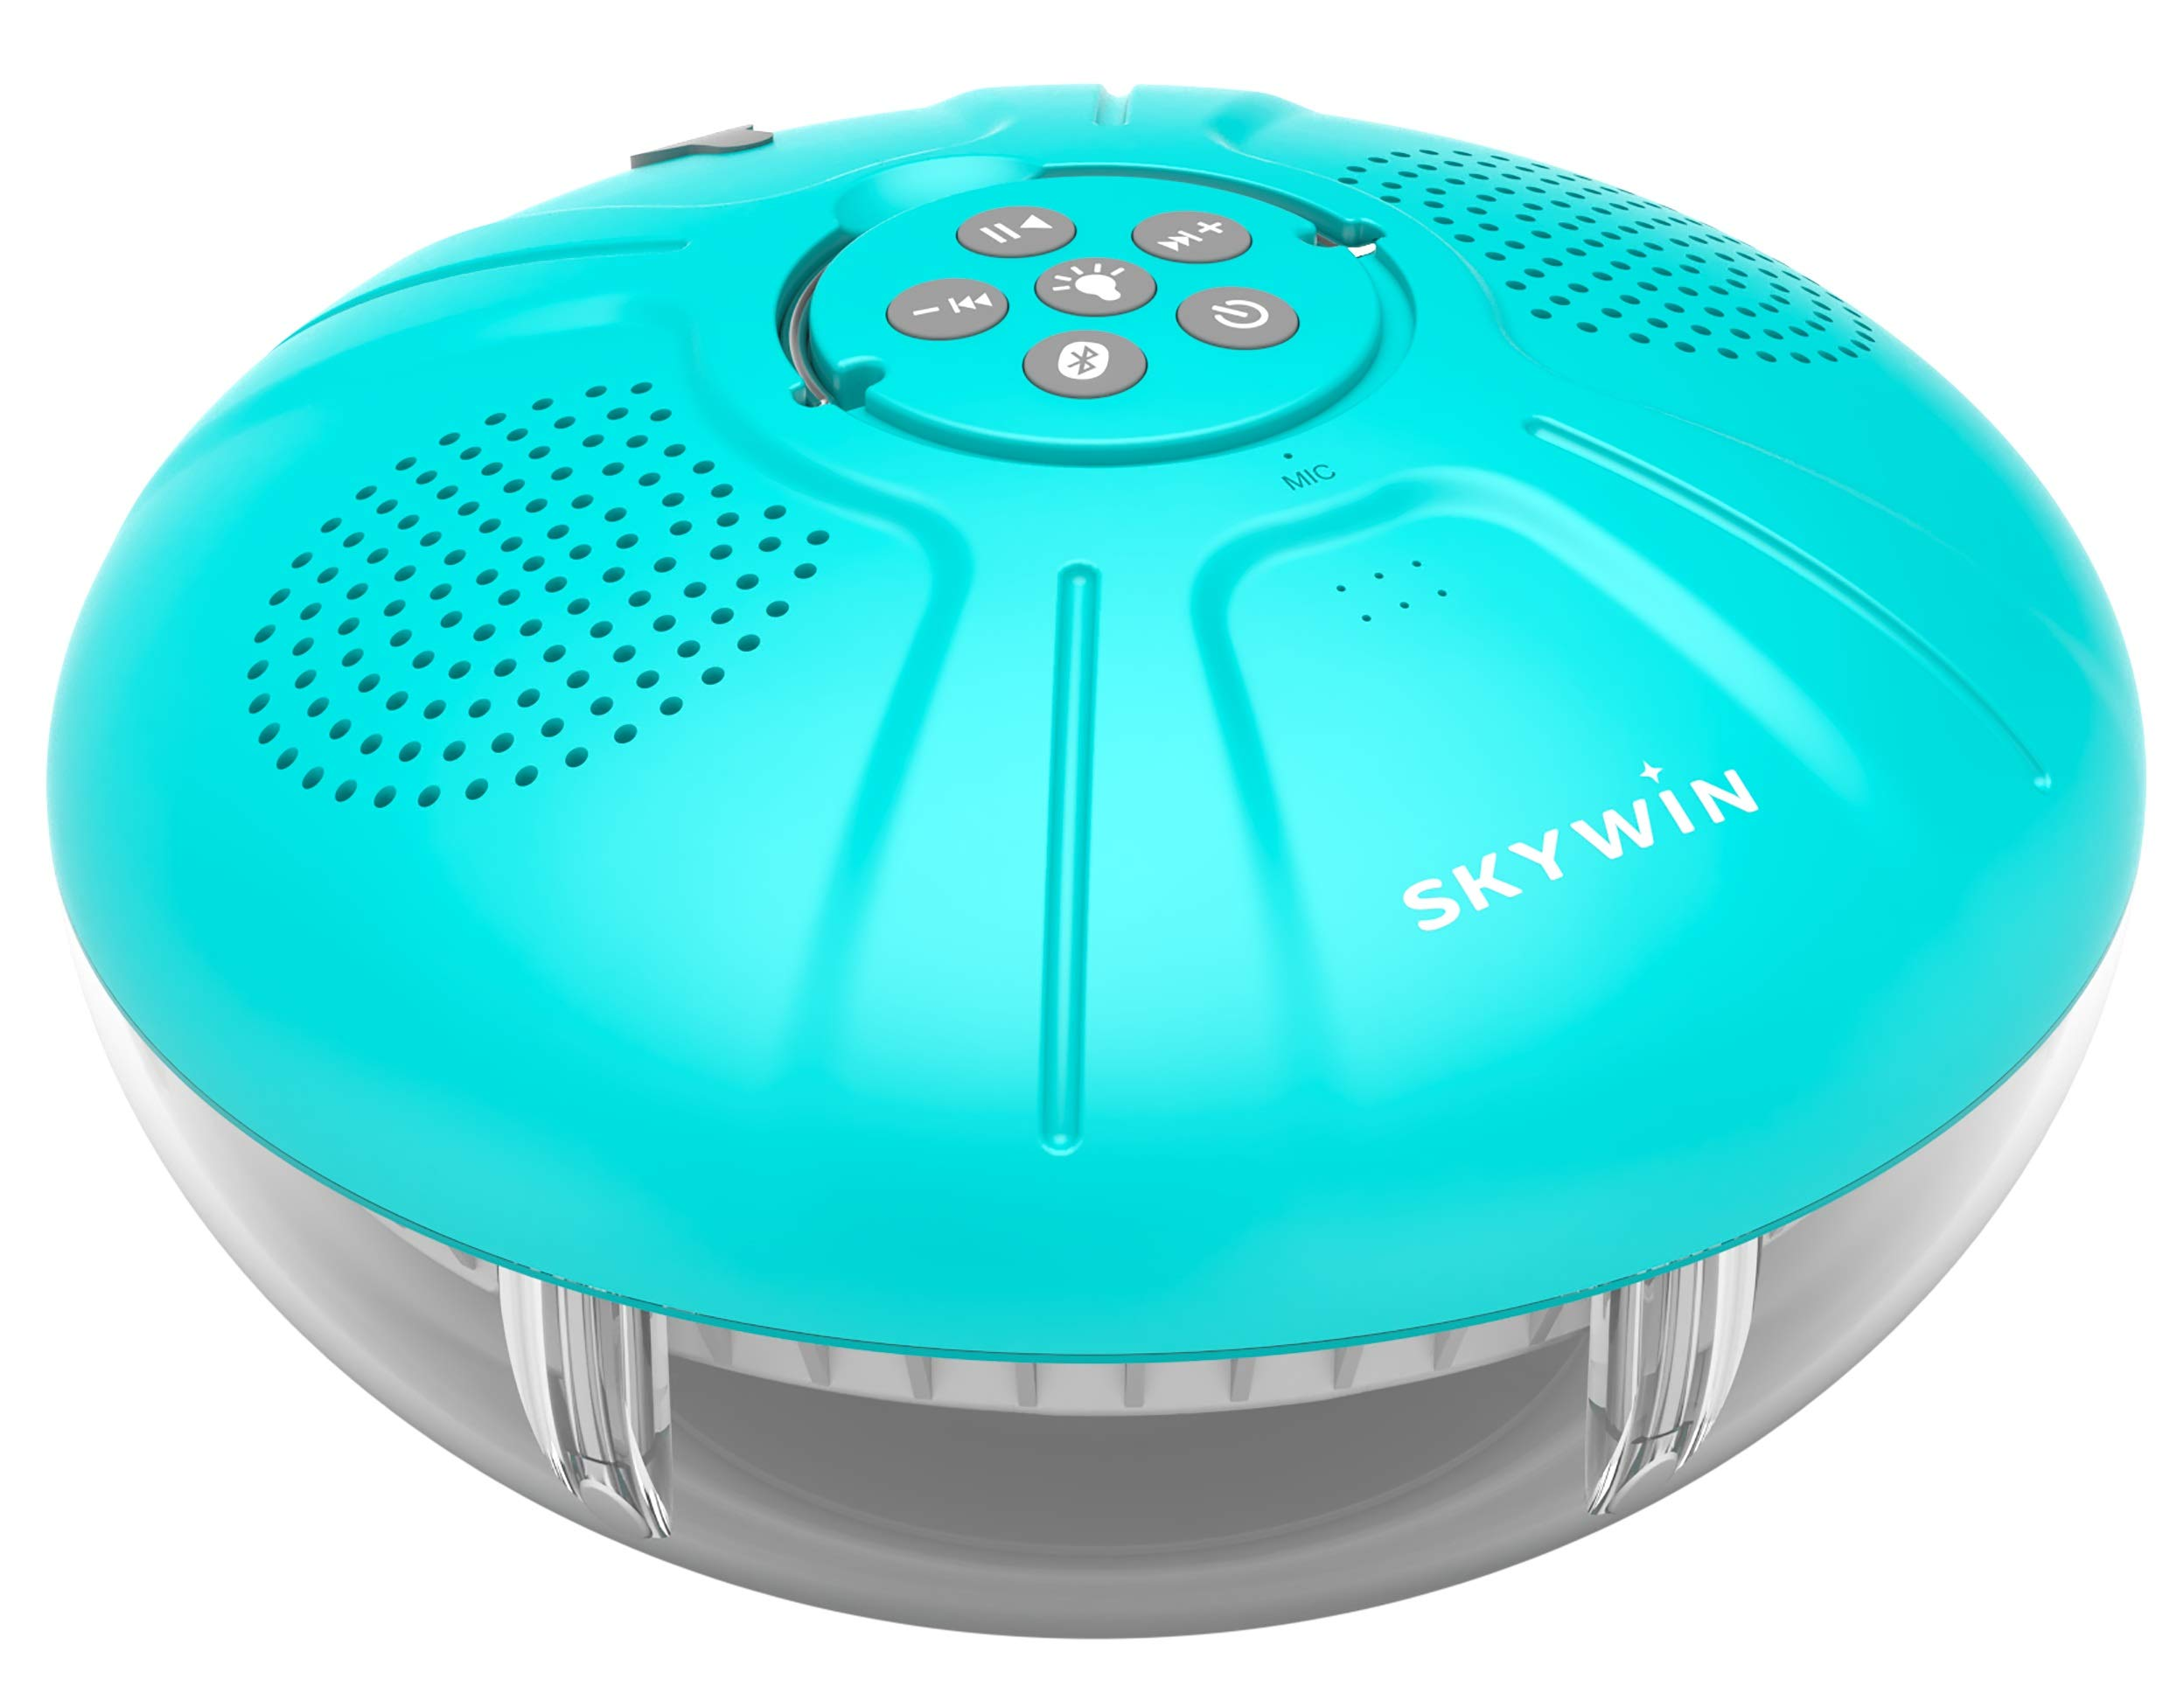 Skywin Hot Tub Speakers and Speakerphone - Disco Light Floating Waterproof IPX7 Large Wireless Pool and Shower Speaker - Pool Speakers Support Dual Speaker Connection and Feature Quality 2.1 Sound by Skywin